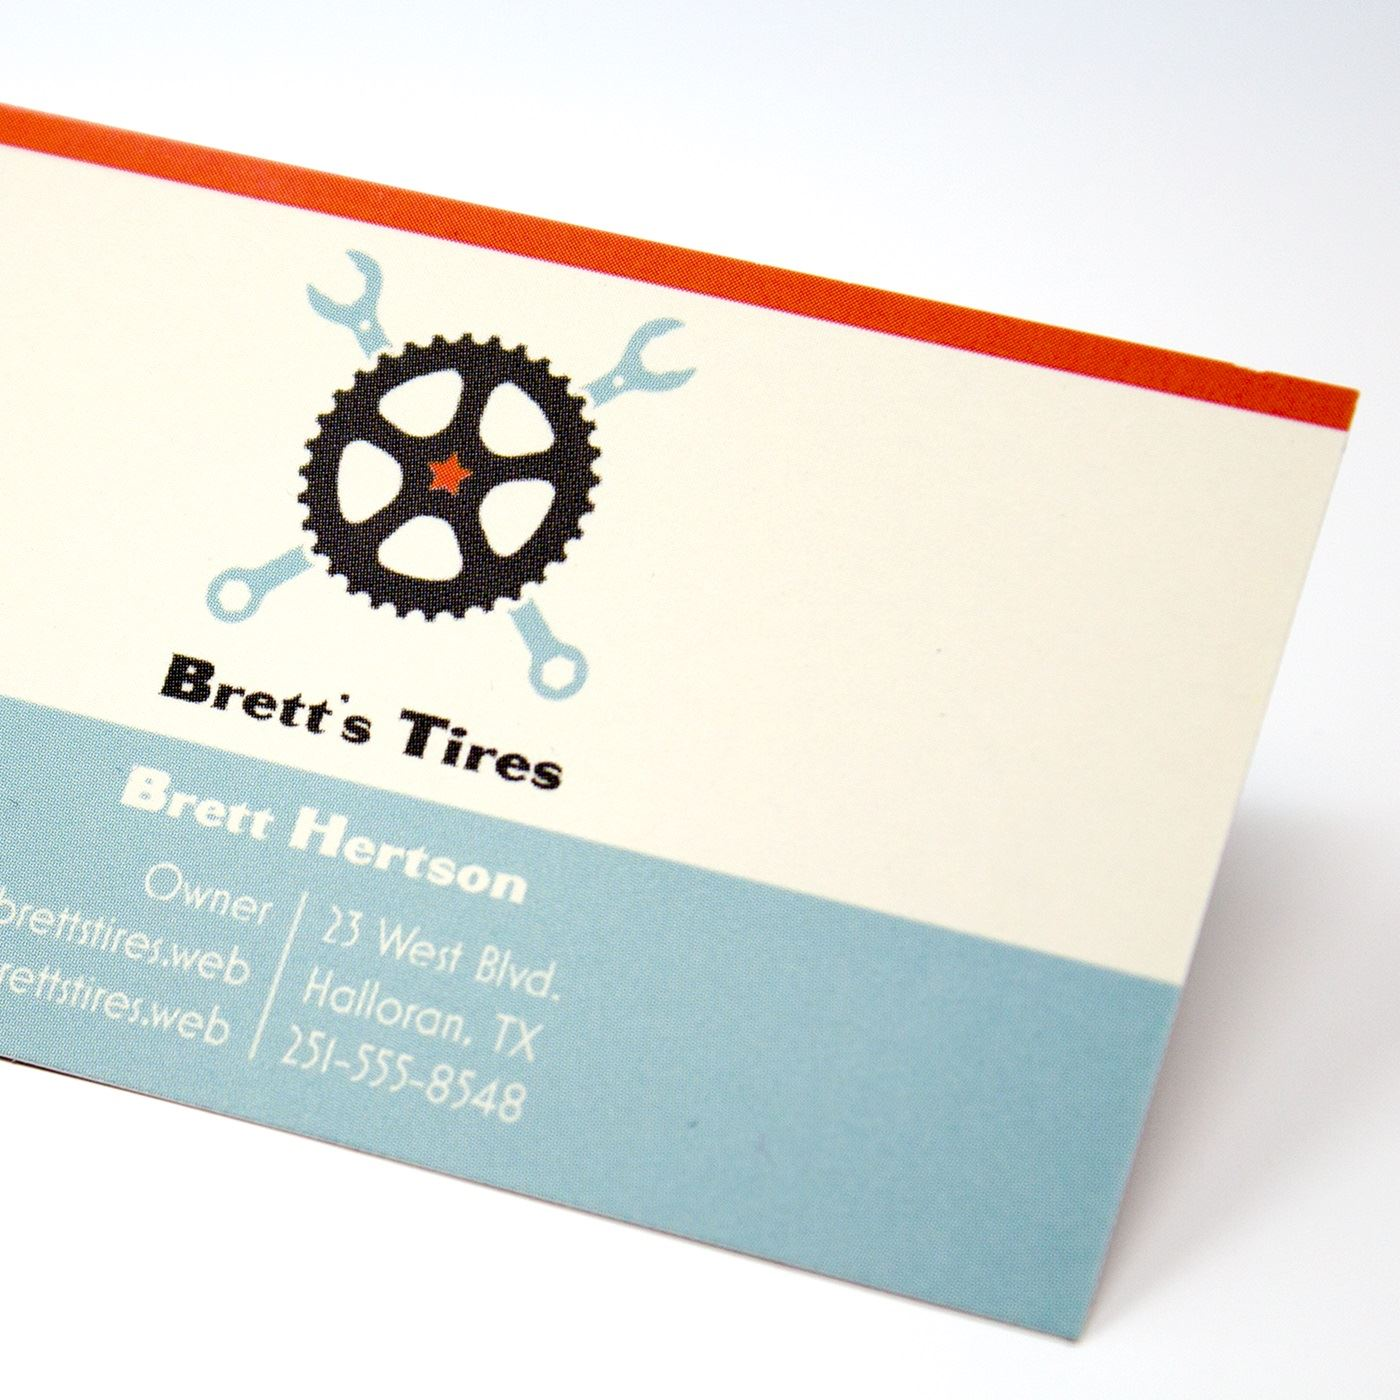 Soft touch business cards soft touch coating vistaprint soft touch business cards reheart Images